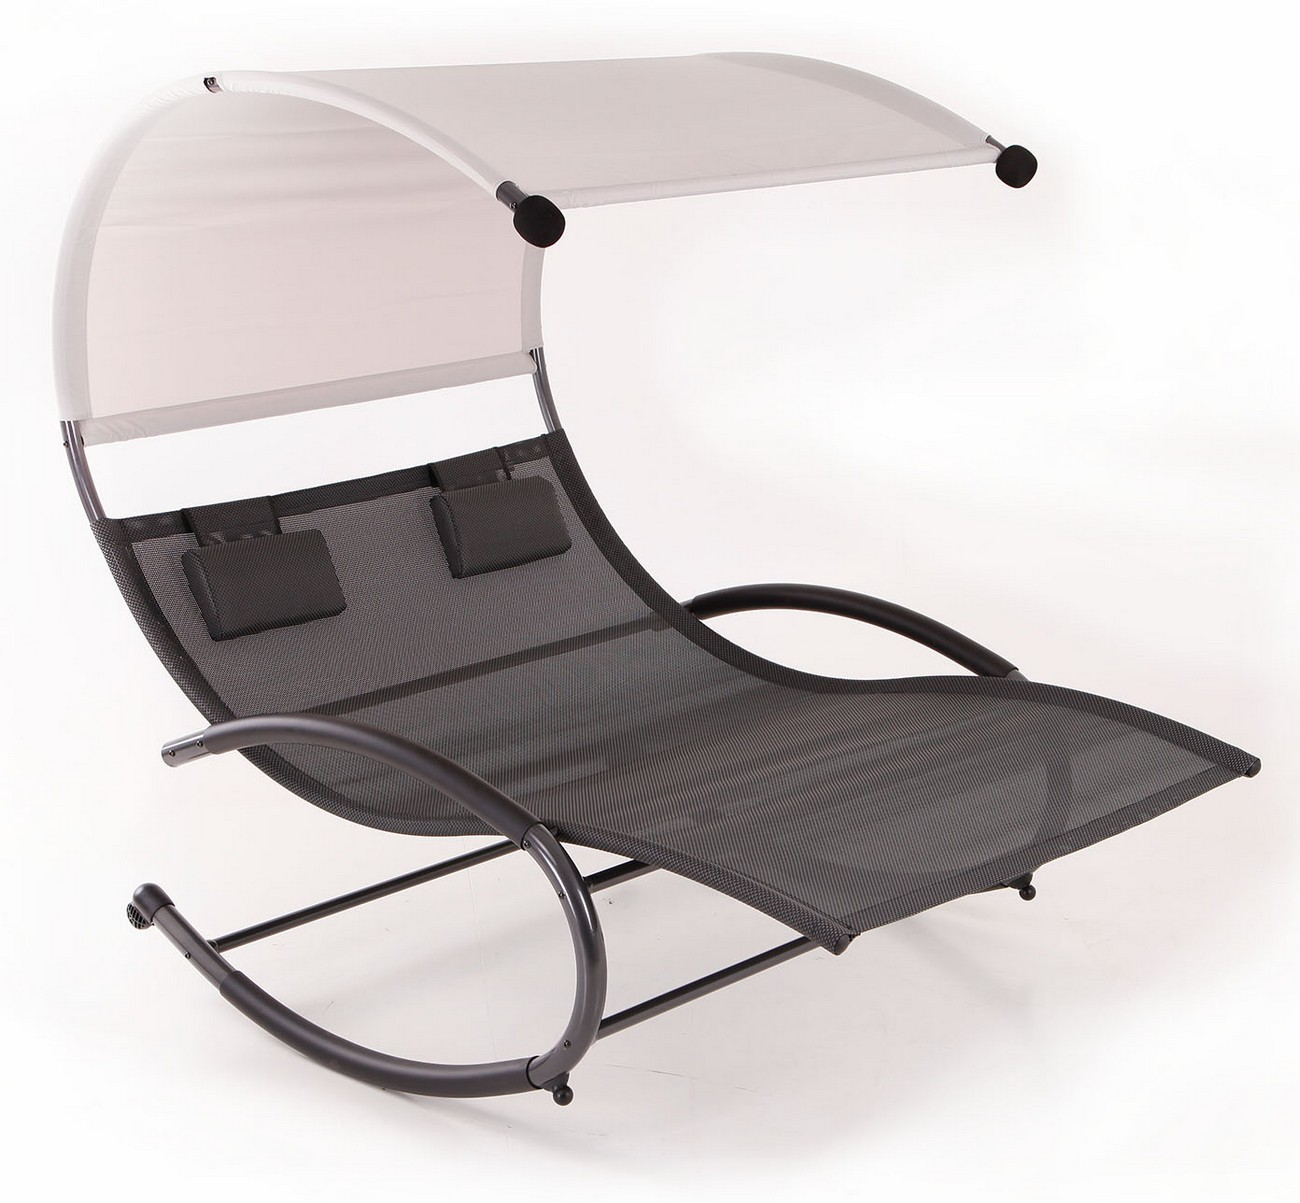 Chaise Rocking Chair Belleze Double Chaise Rocker Patio Furniture Seat Chair Canopy Pool Swing Steel Outdoor Walmart